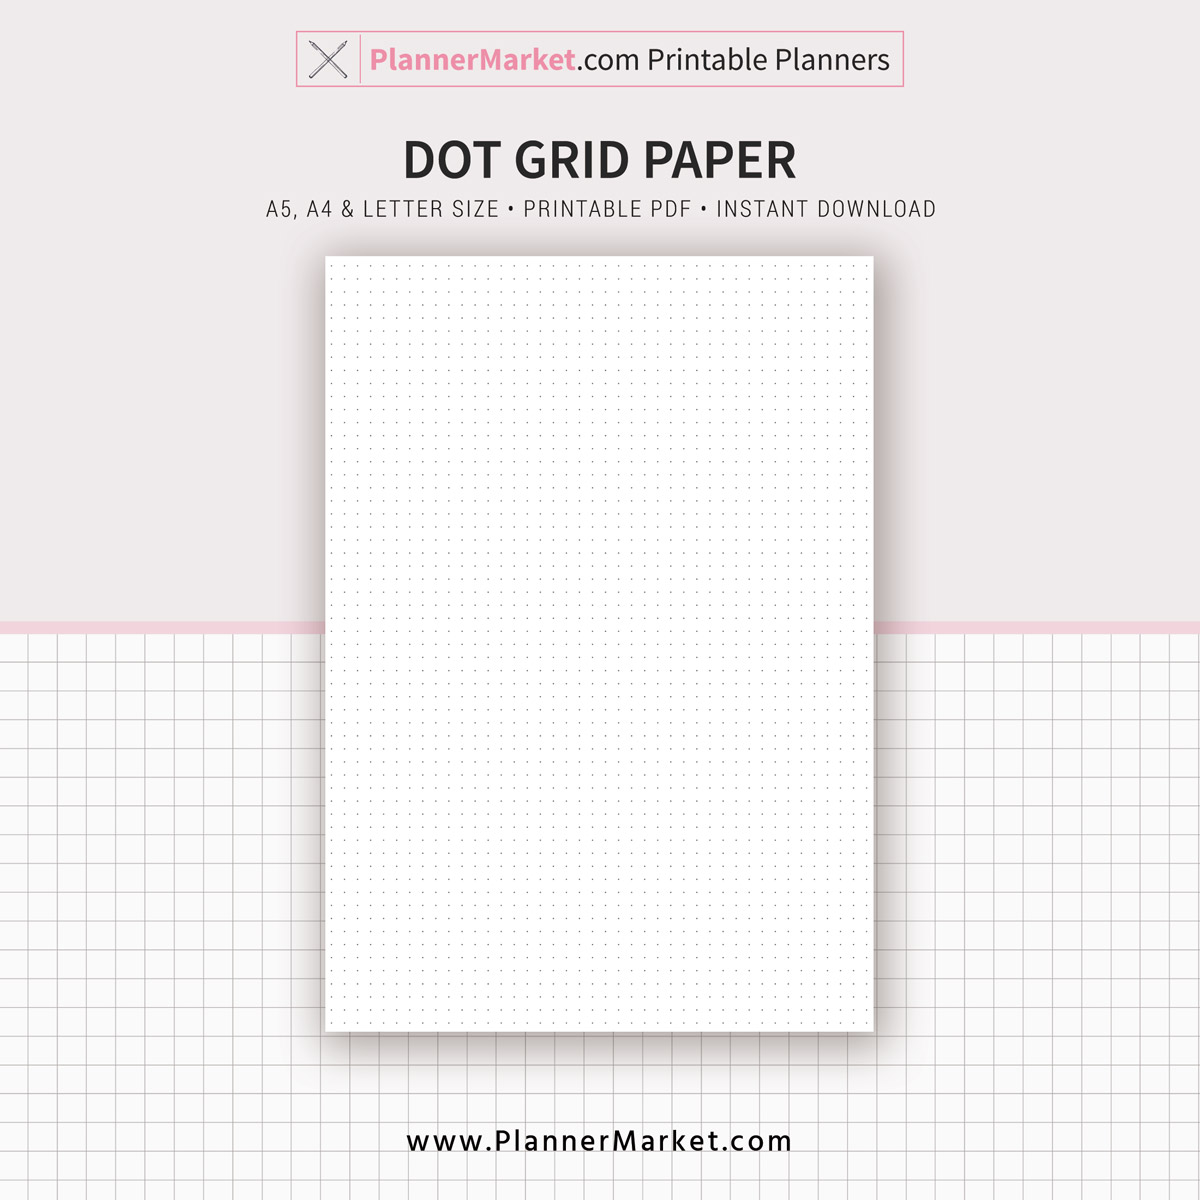 photograph relating to A5 Dot Grid Printable referred to as Straightforward Web pages, Dot Grid, Grid, Covered Paper, Laptop, A4, Letter Measurement, Planner Inserts, A5 Planner Binder, Instantaneous Obtain